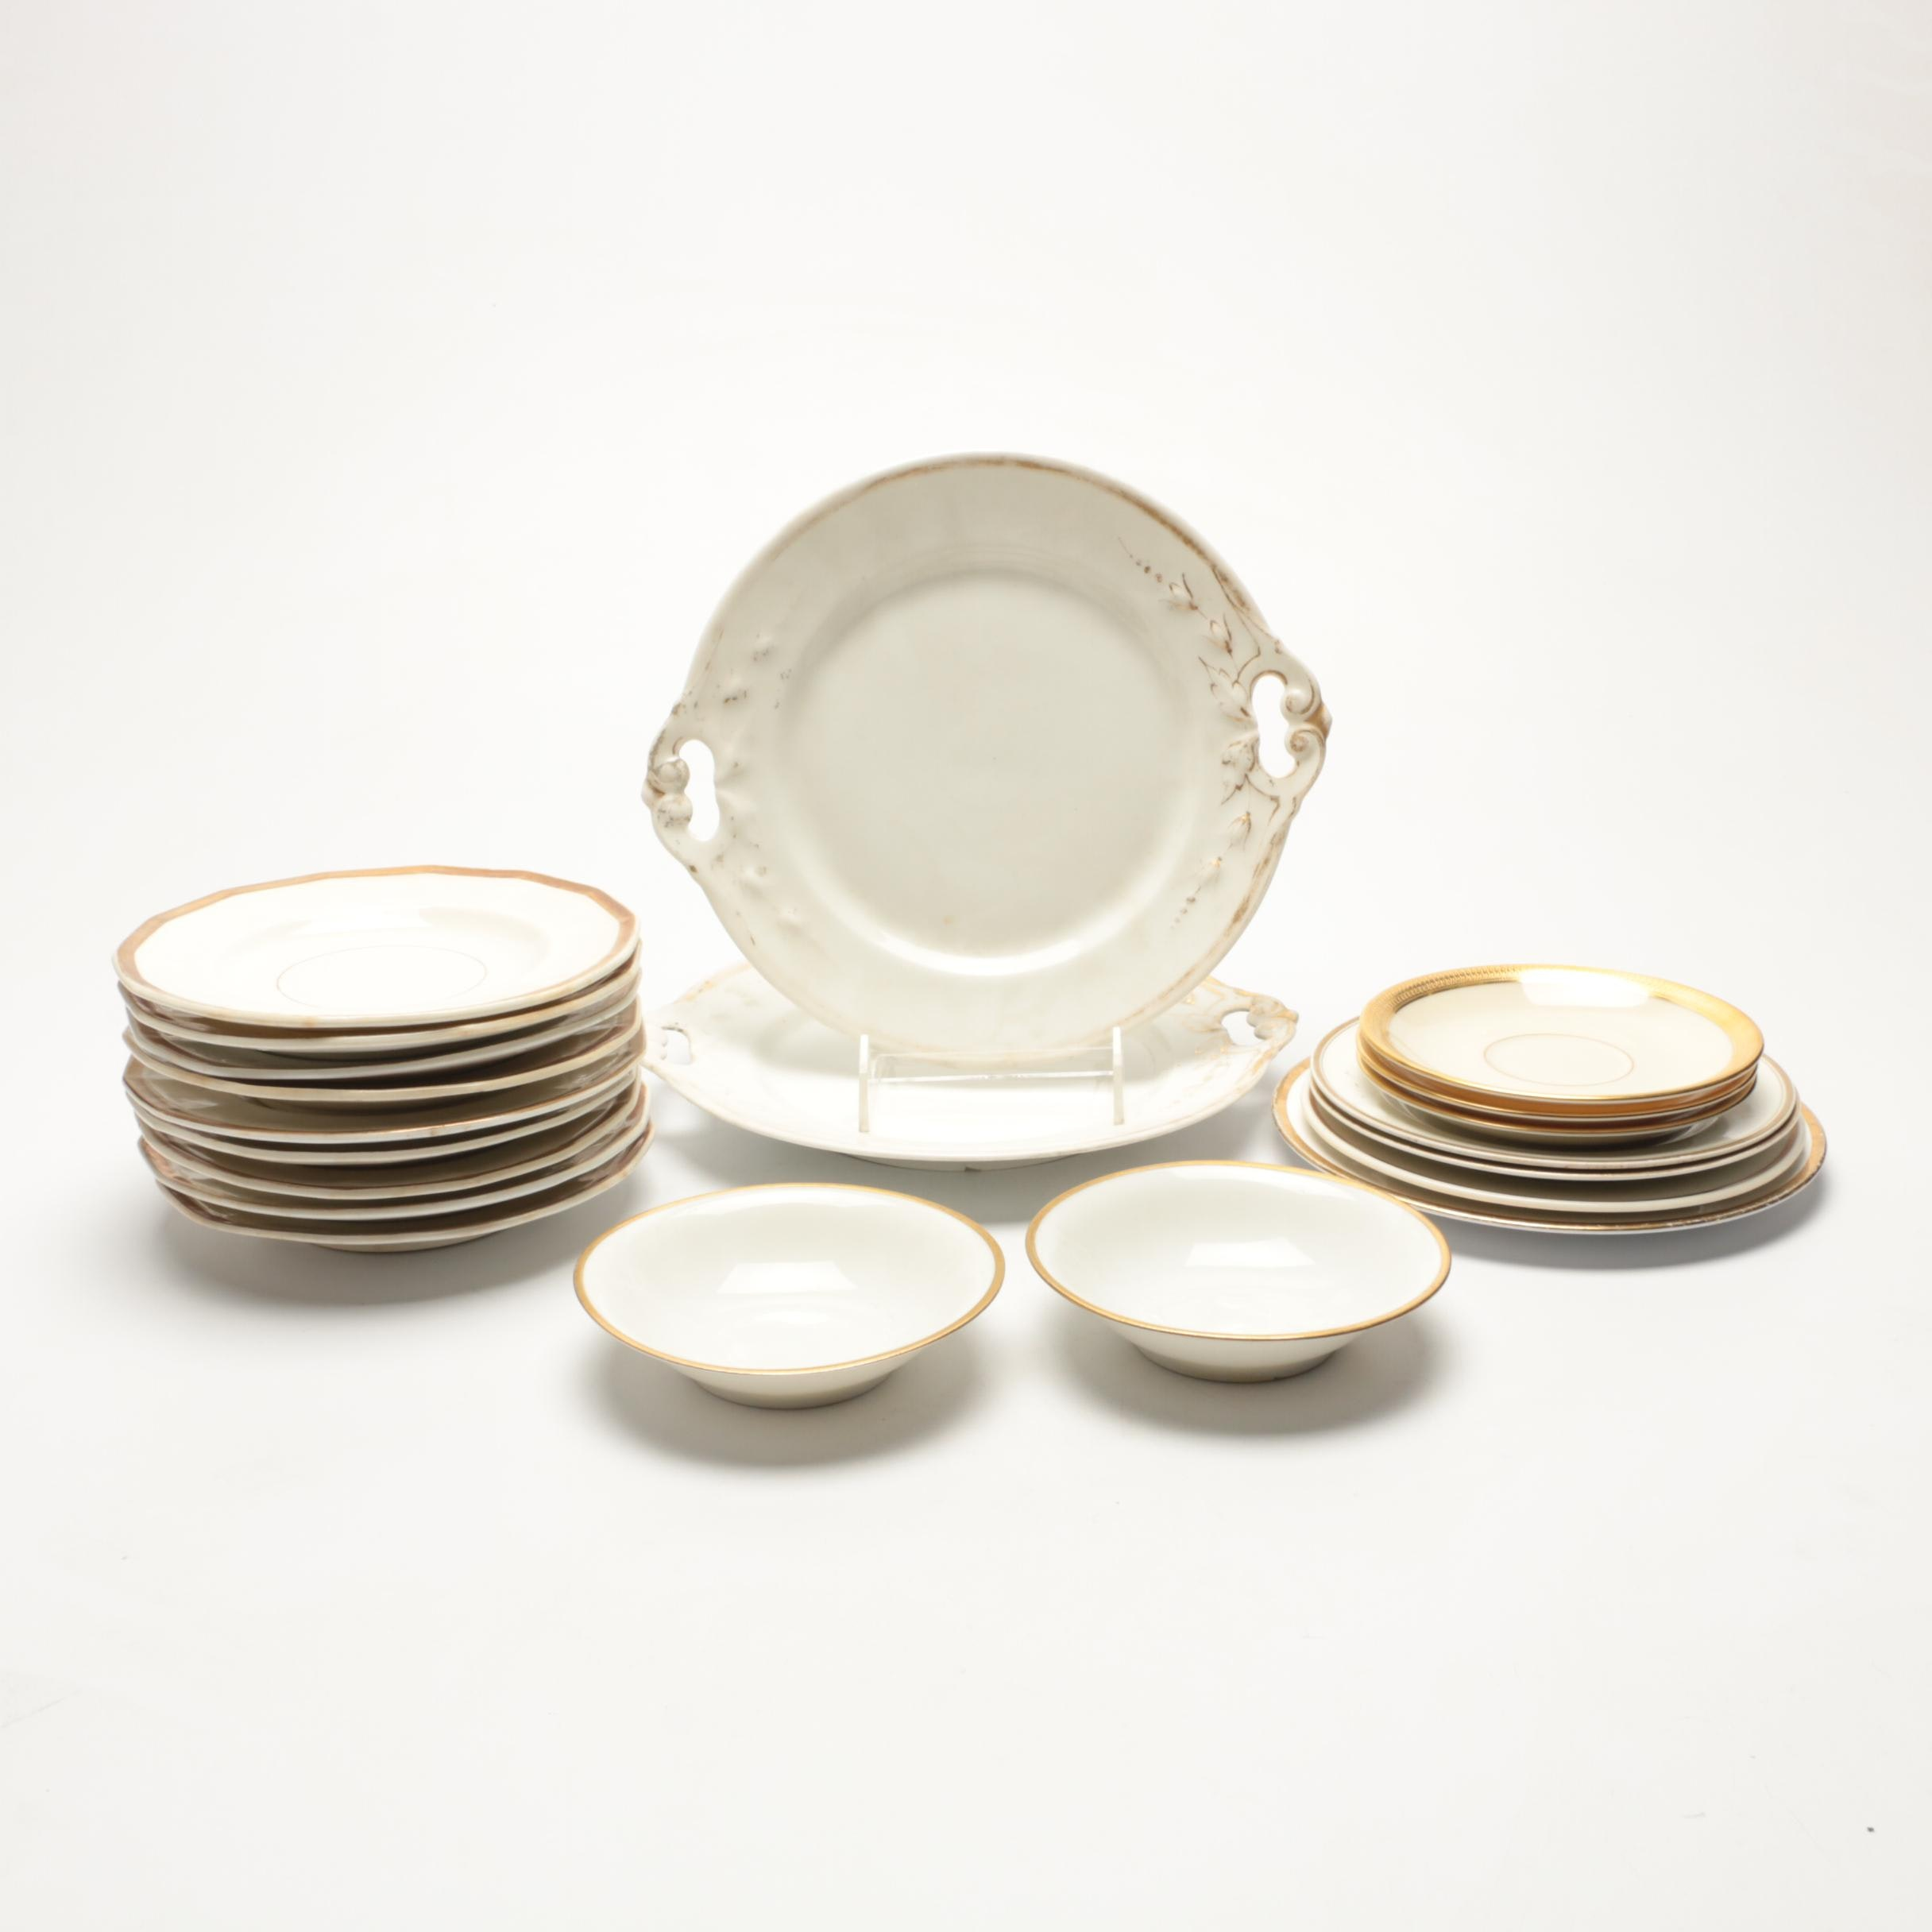 Vintage Assorted China Featuring Lamberton and Royal Victoria